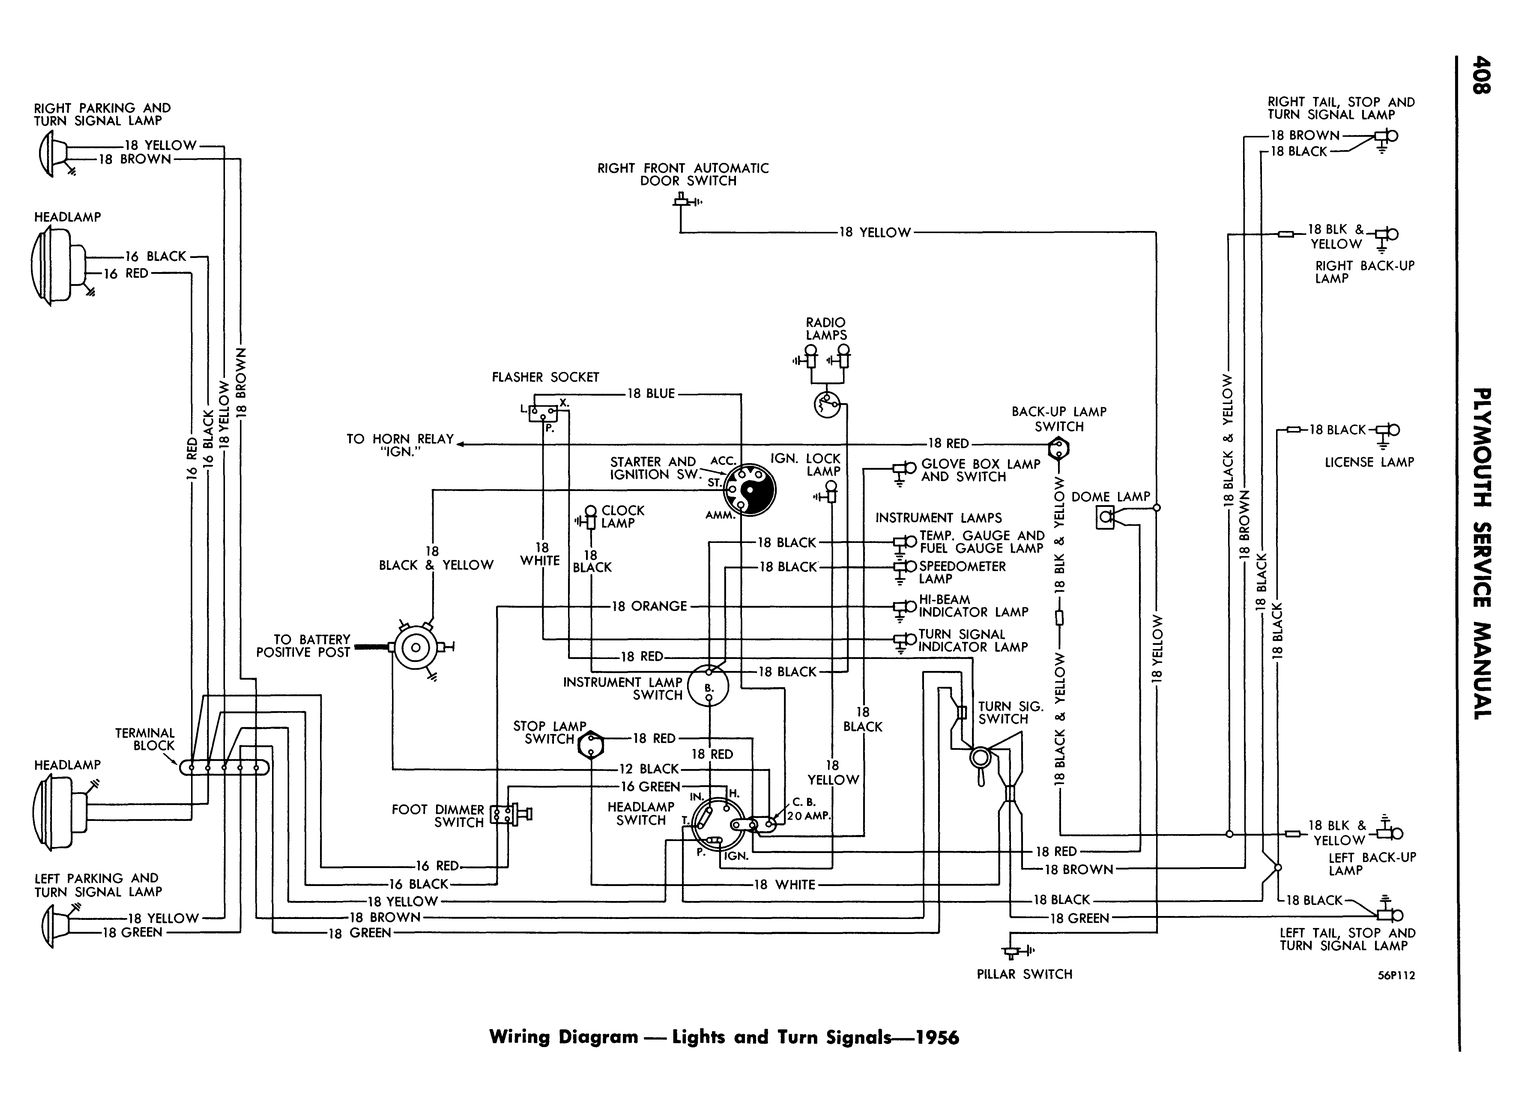 viewing a thread - 55-56 dodge and plymouth wiring ... 56 chevrolet wiring diagram